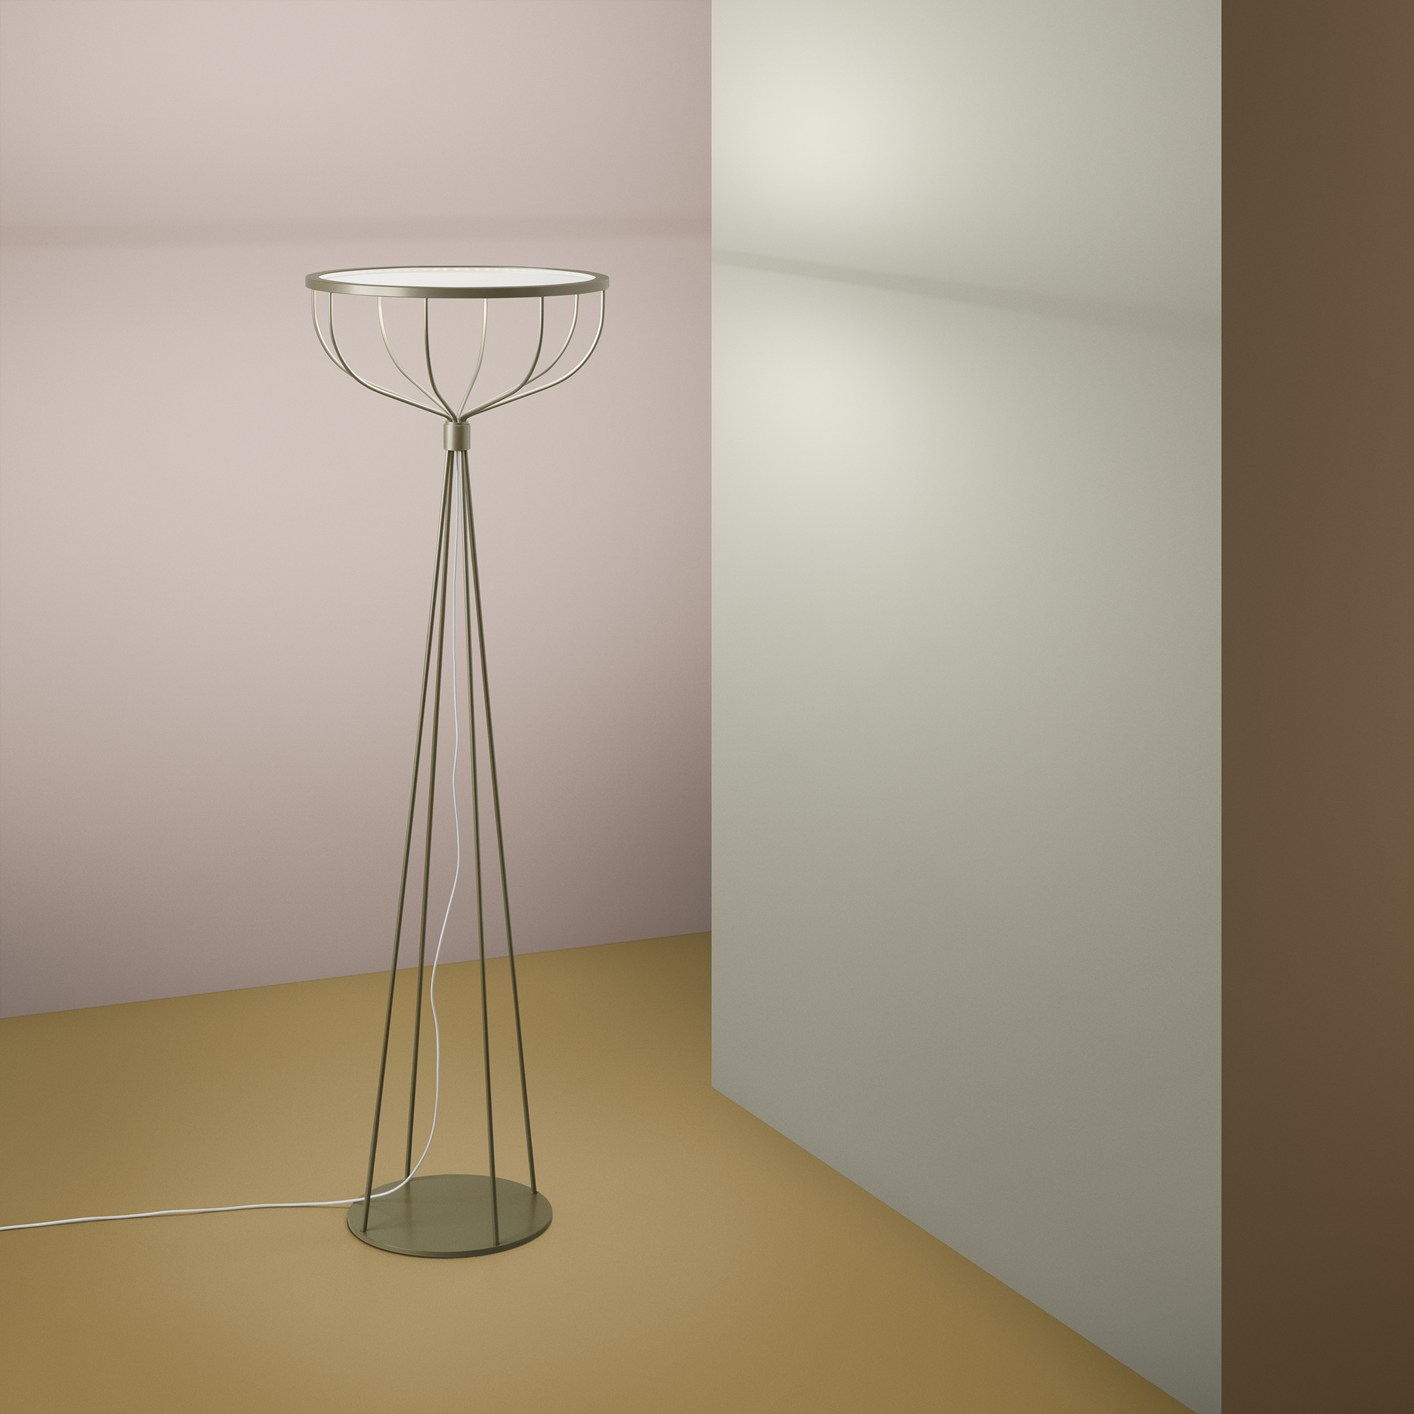 Plane Lamp by Front for Zero